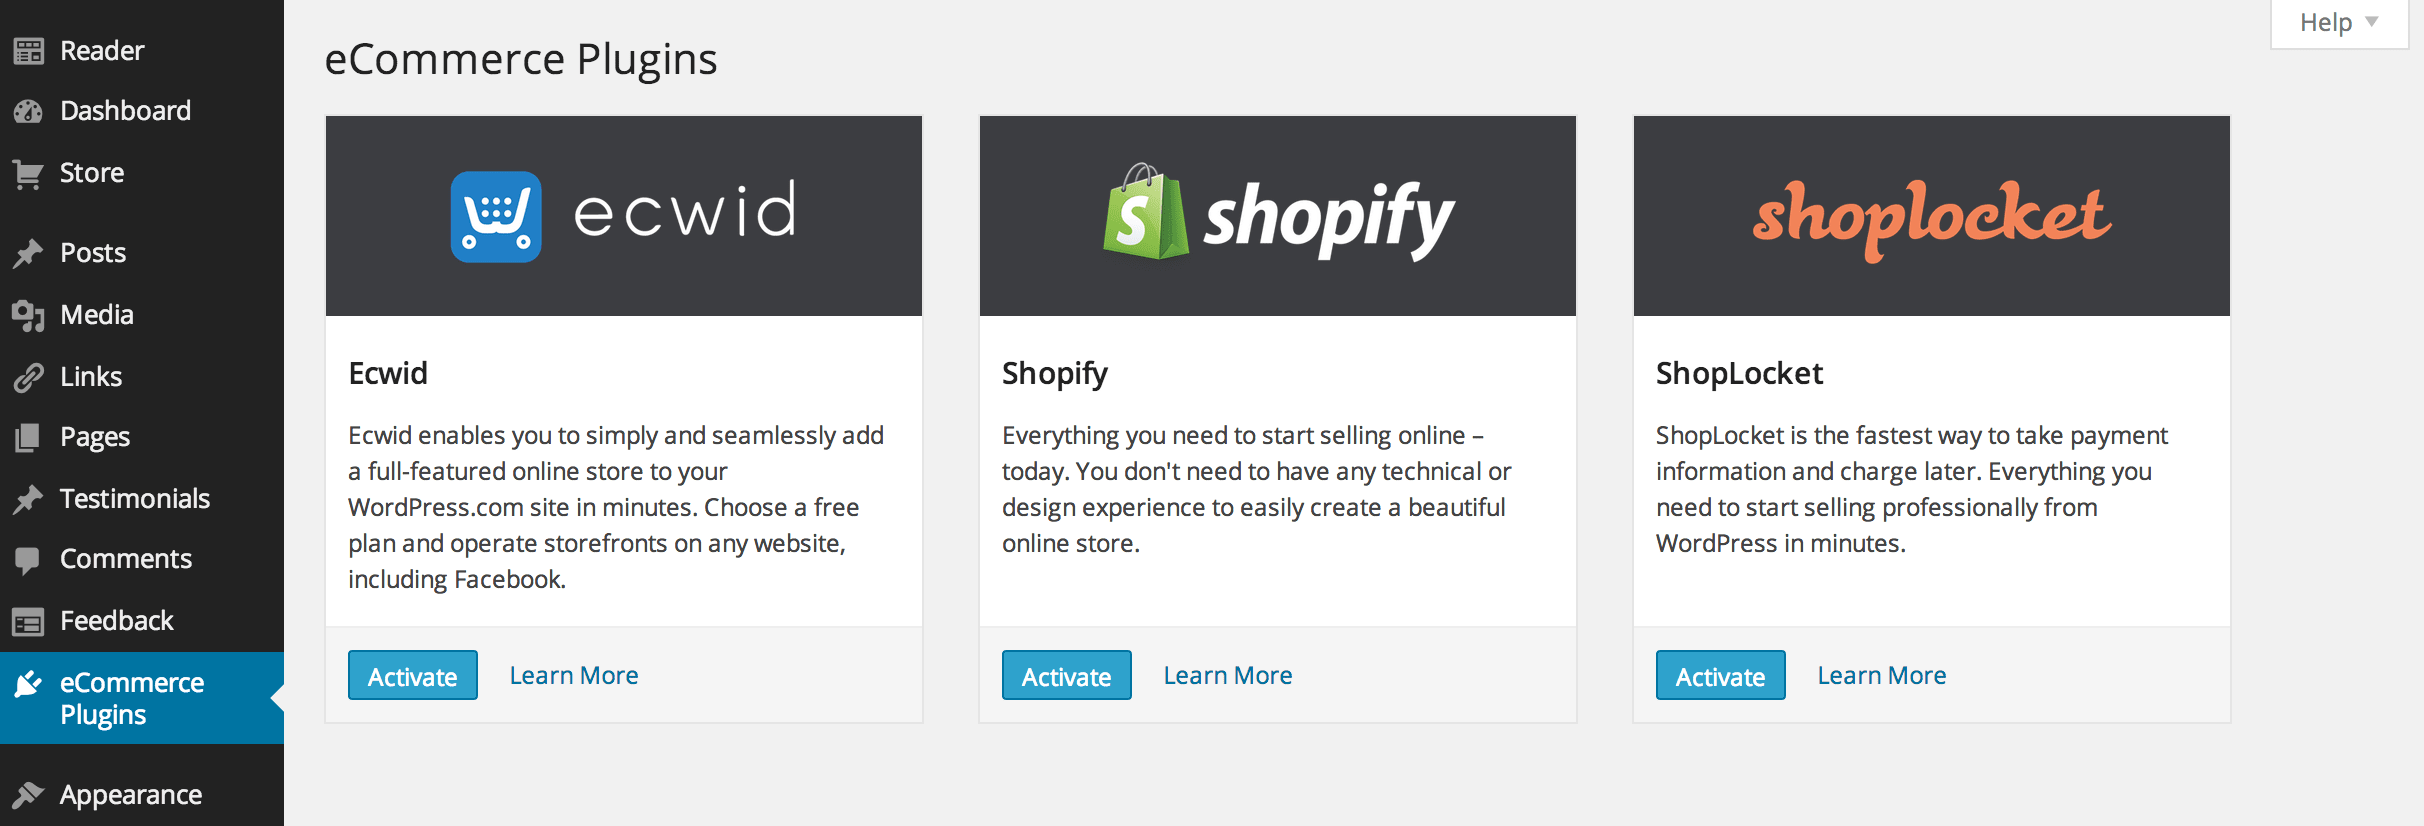 Ecommerce Integration Arrives for WordPress.com Business